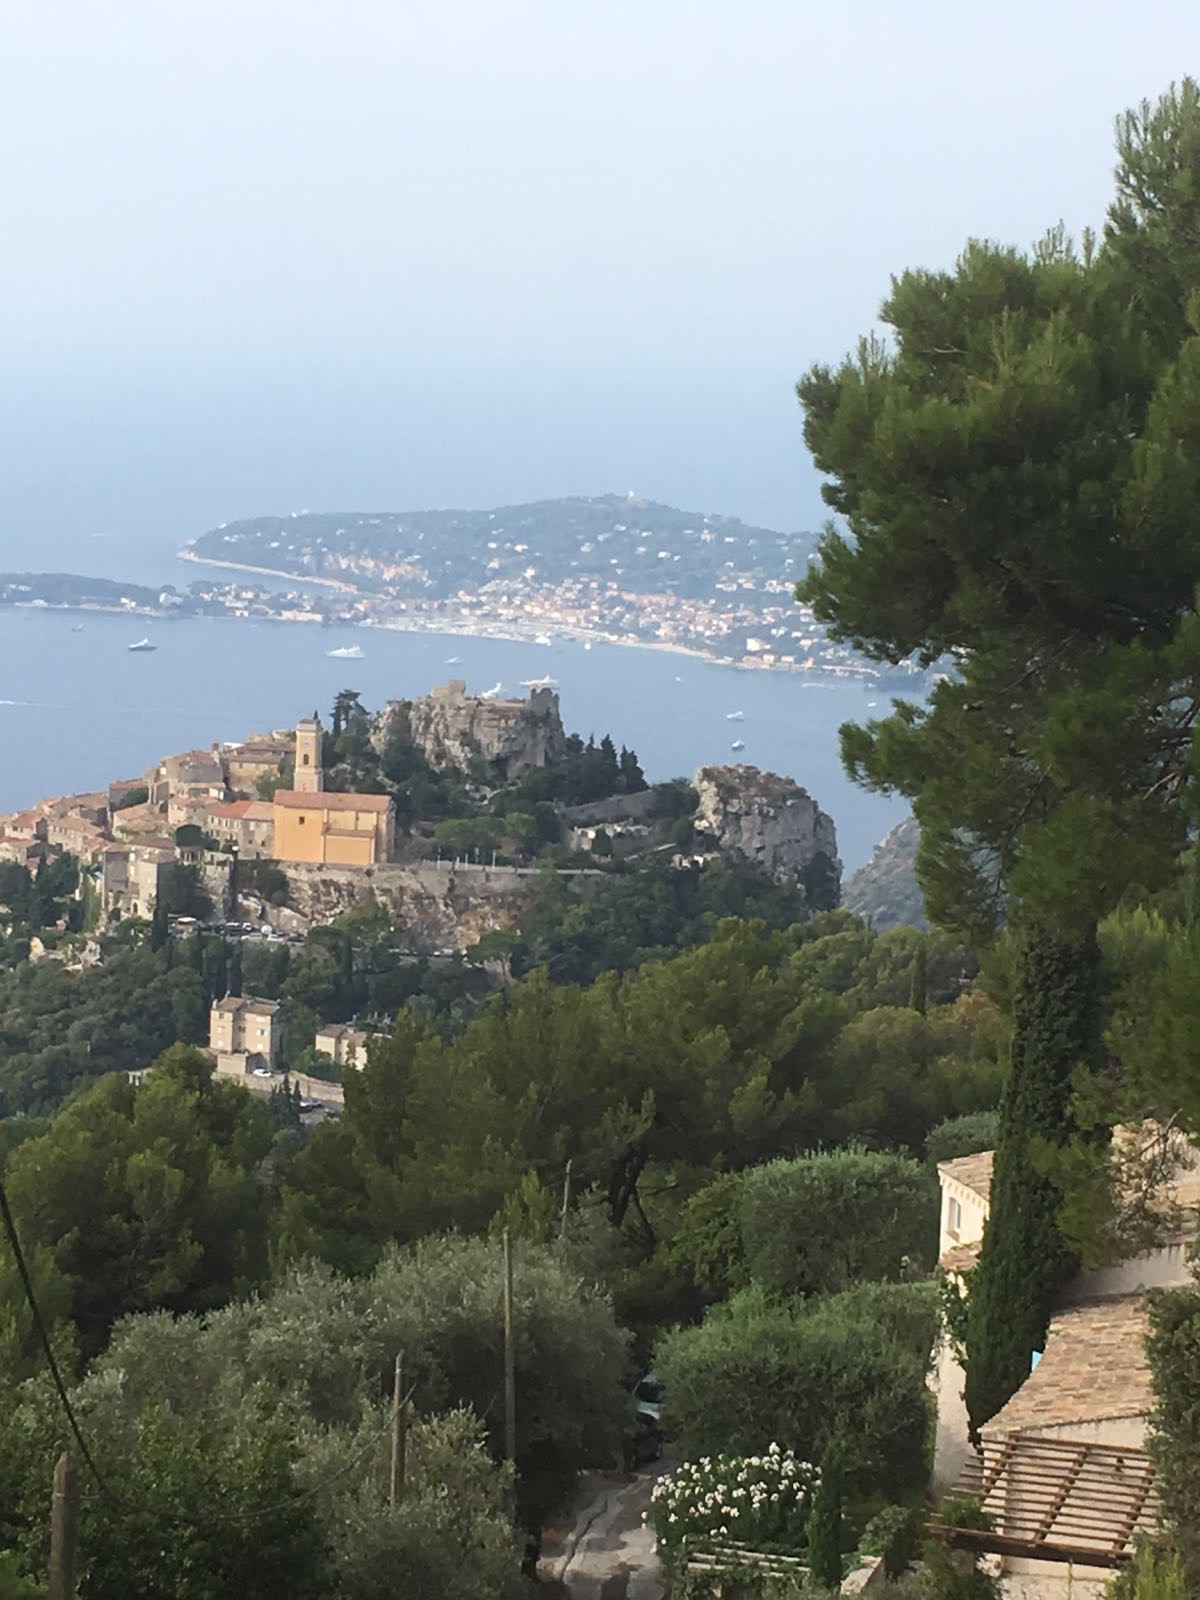 Cycling on the French Riviera